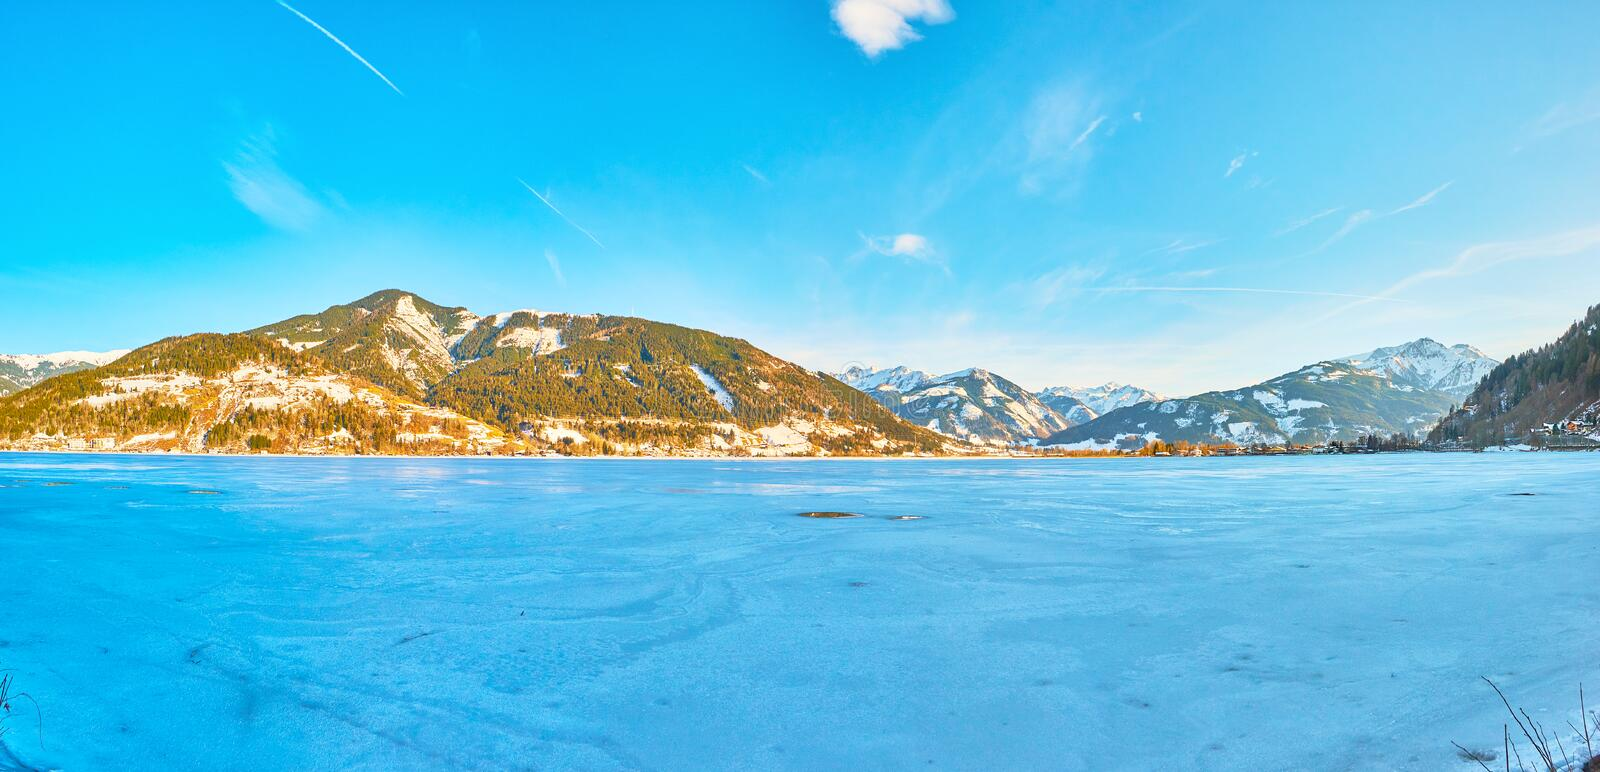 Evening on Zeller see lake, Zell am See, Austria royalty free stock photography